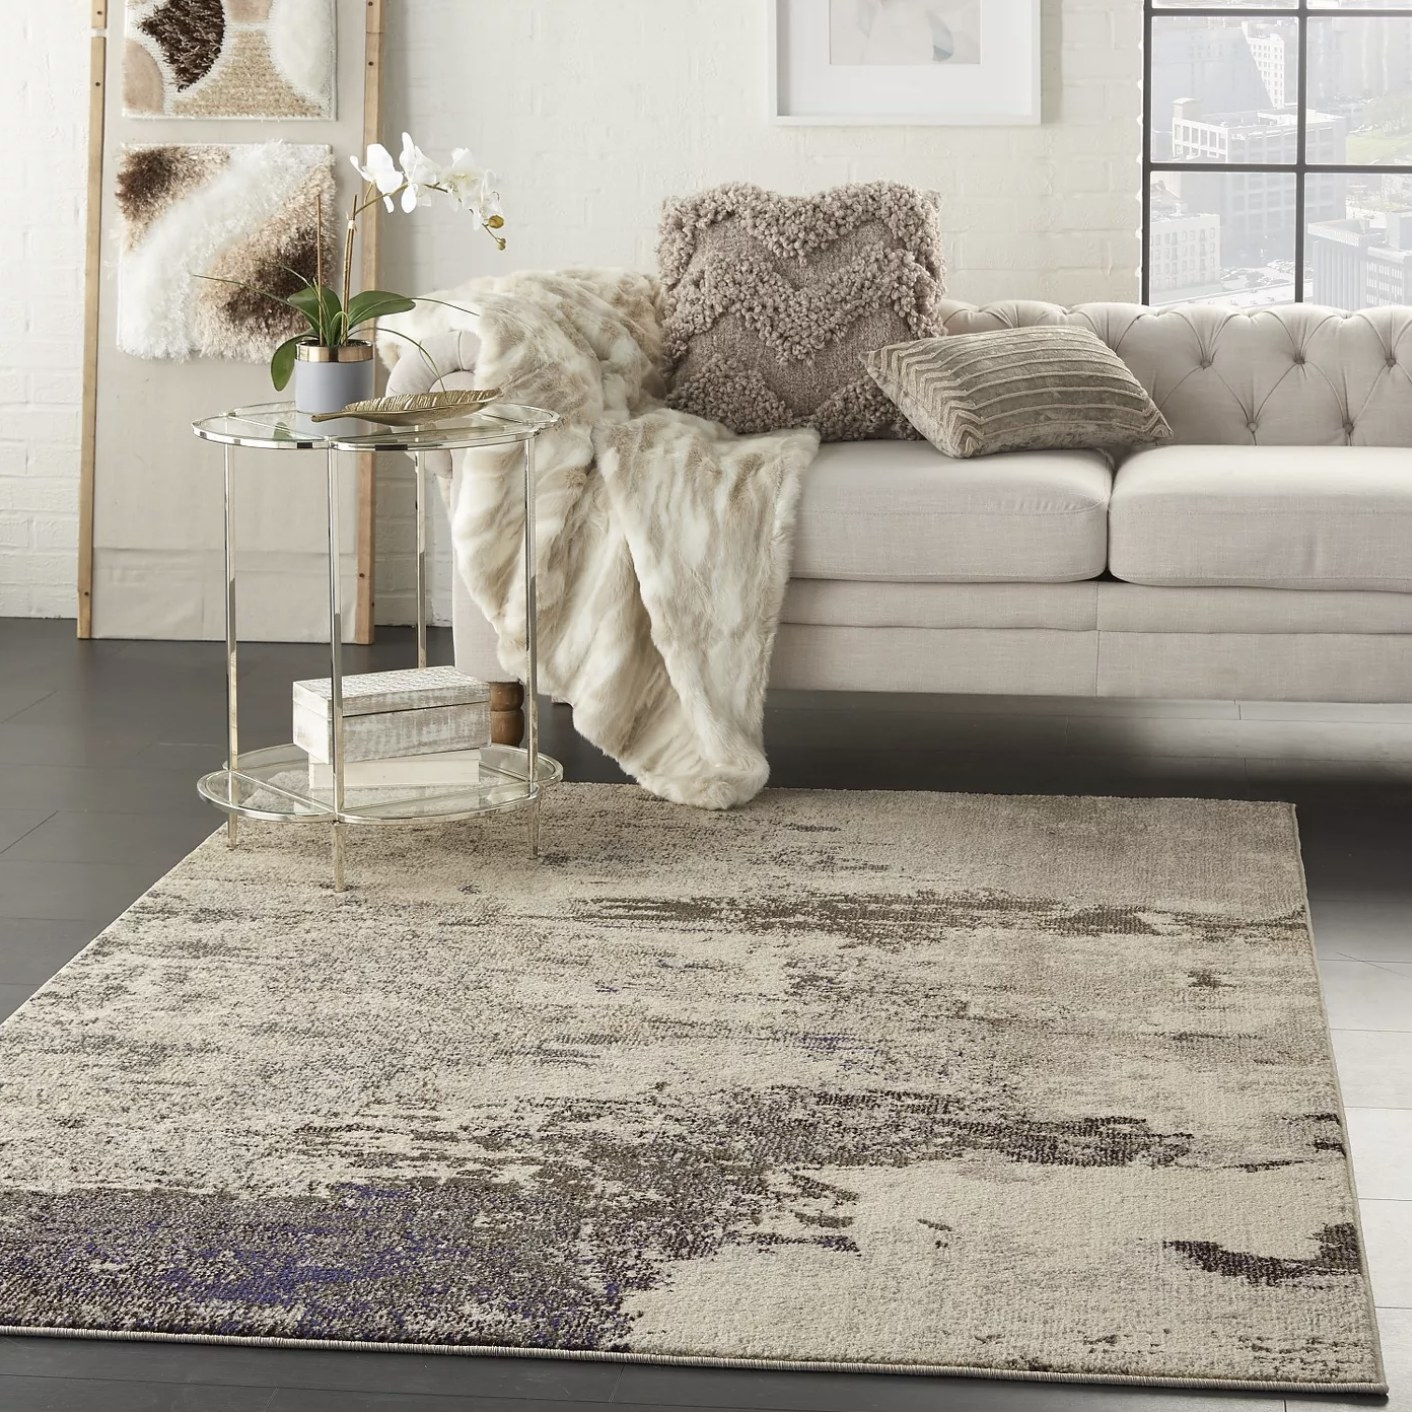 a tan slightly patterned area rug